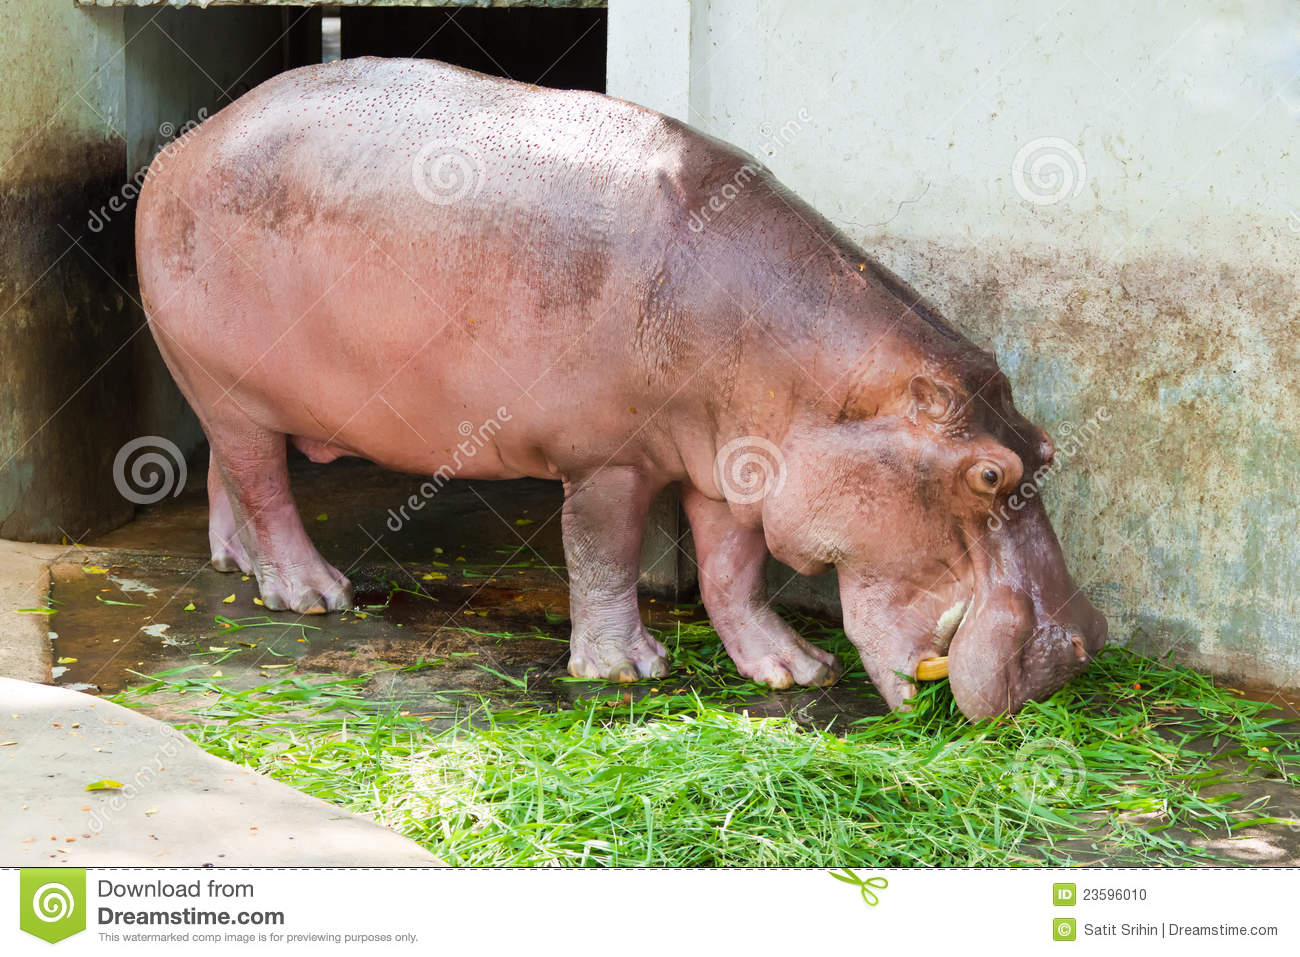 Hippo Is Eating Grass Stock Photo - Download Image Now ... |Hippo Eating Grass